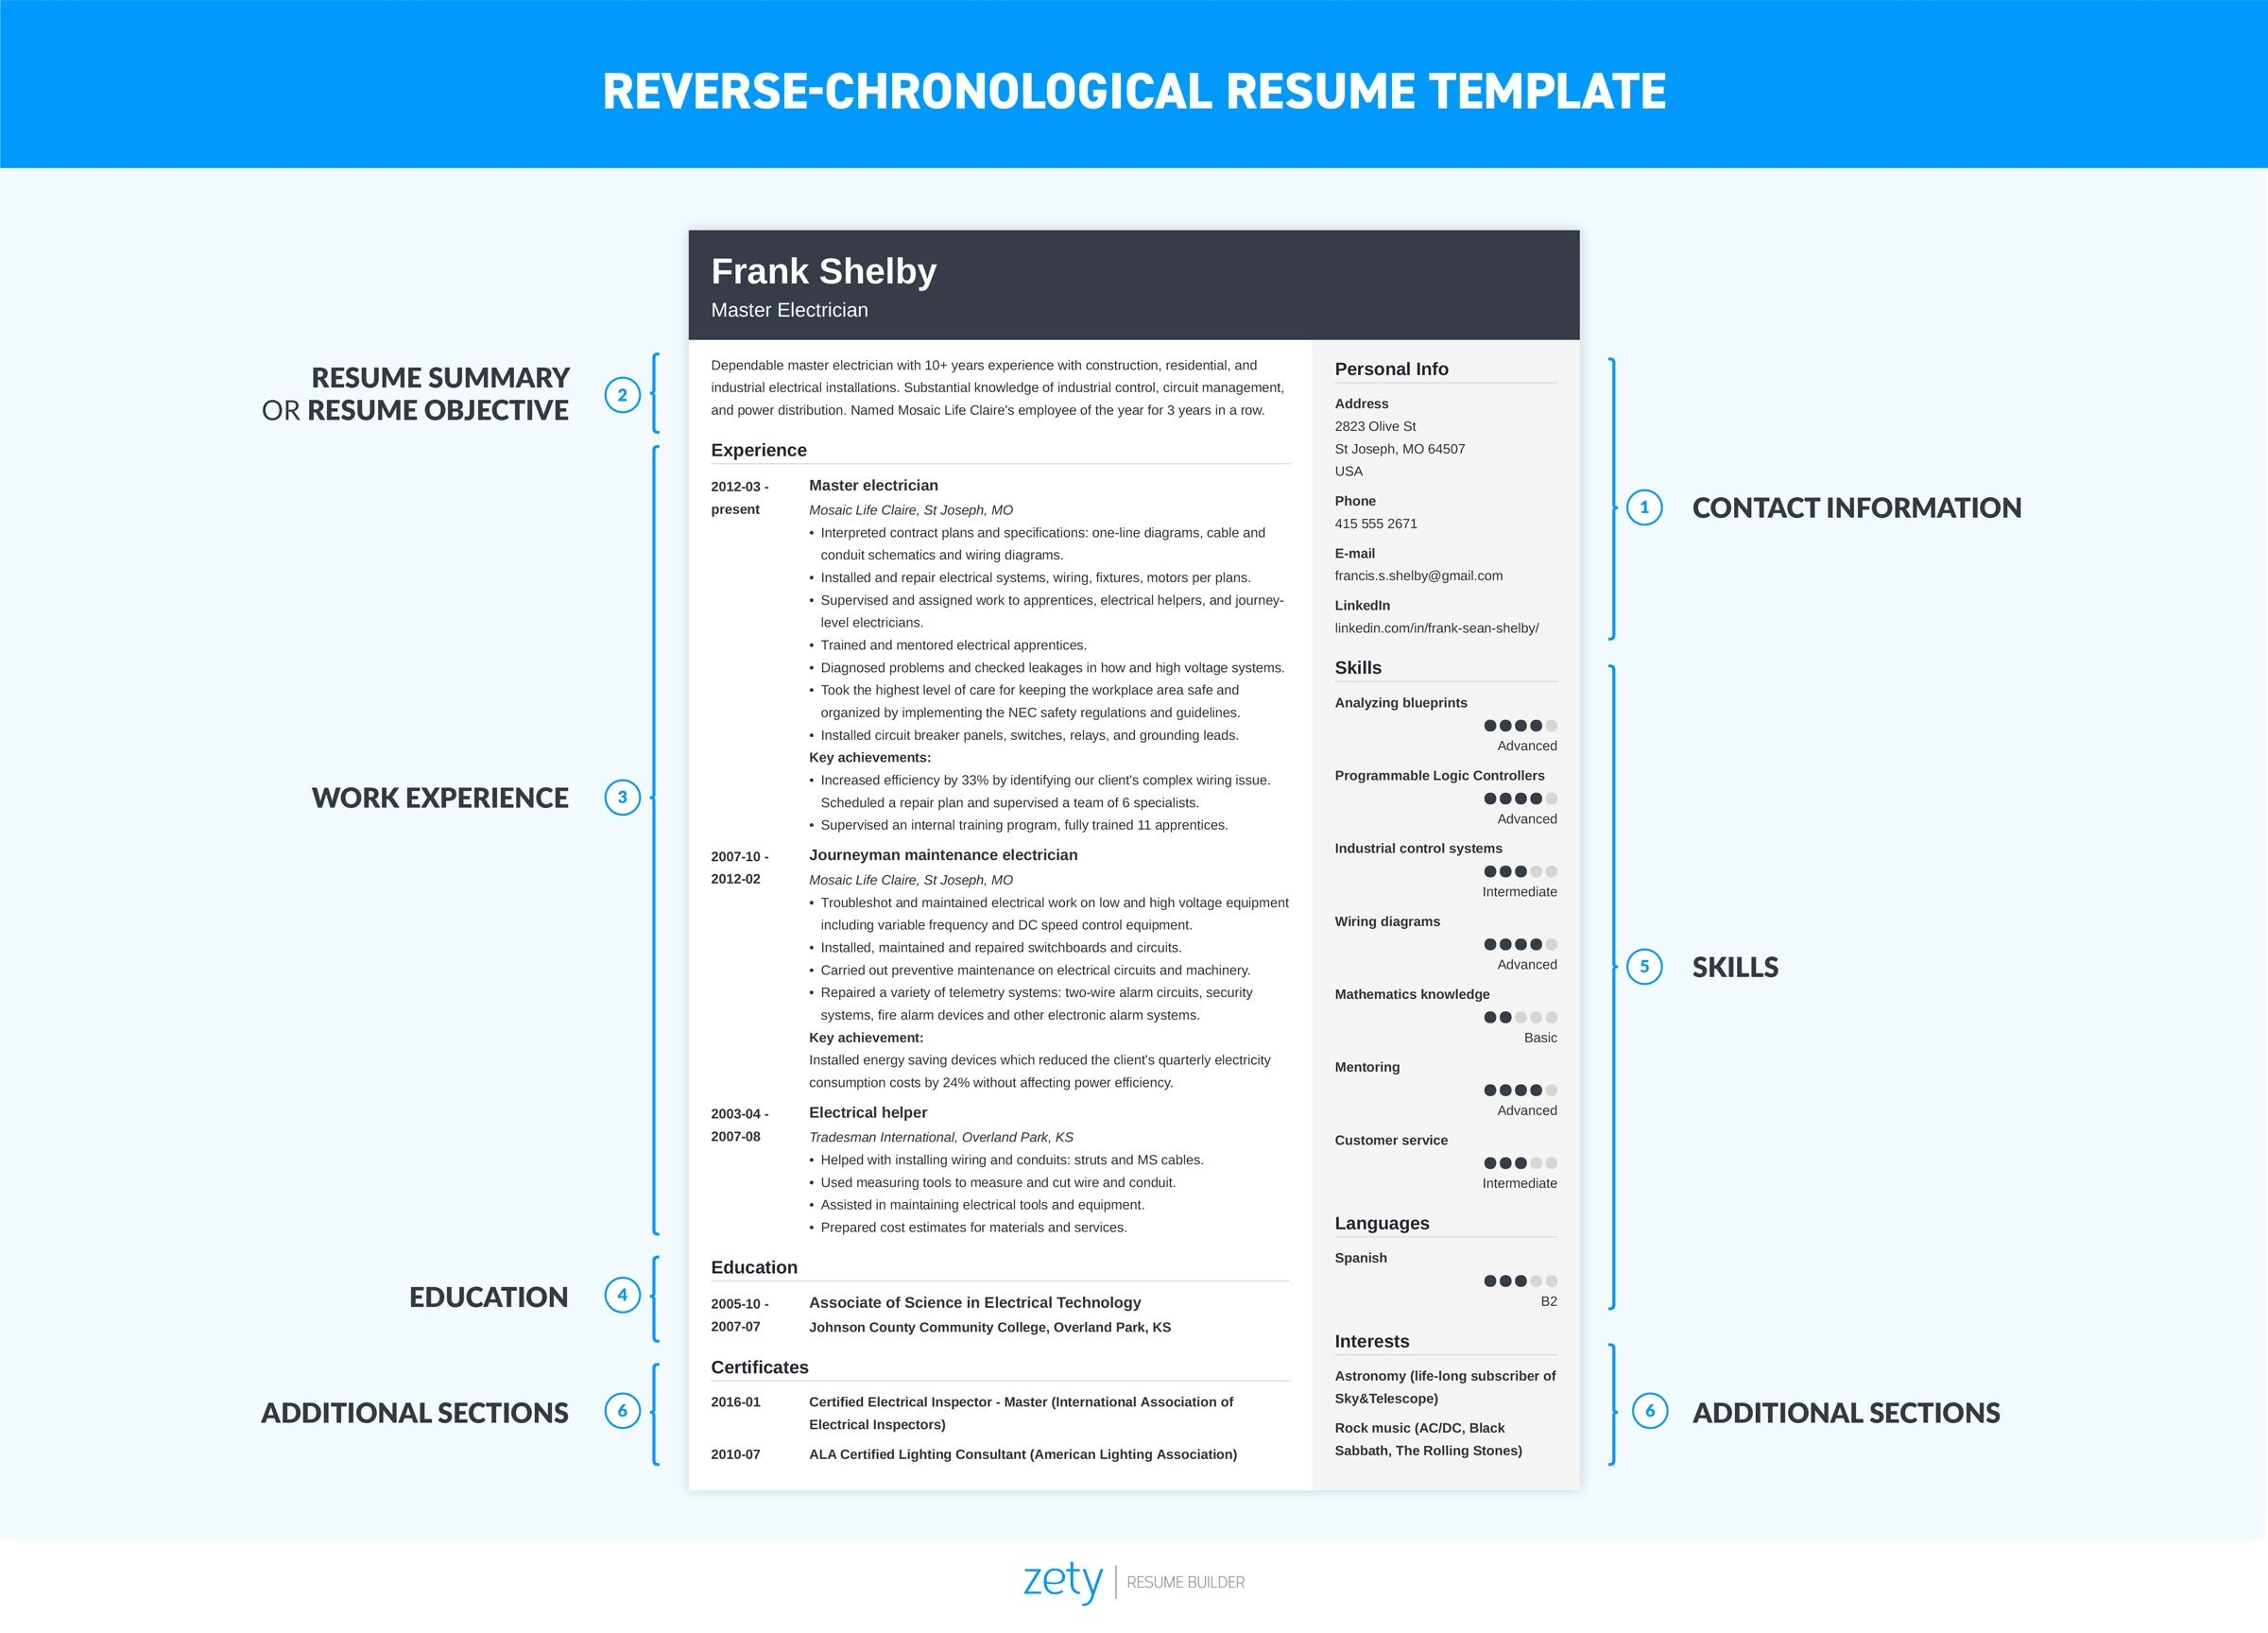 chronological resume template format examples current to write good skills for accounting Resume Current Resume Format 2019